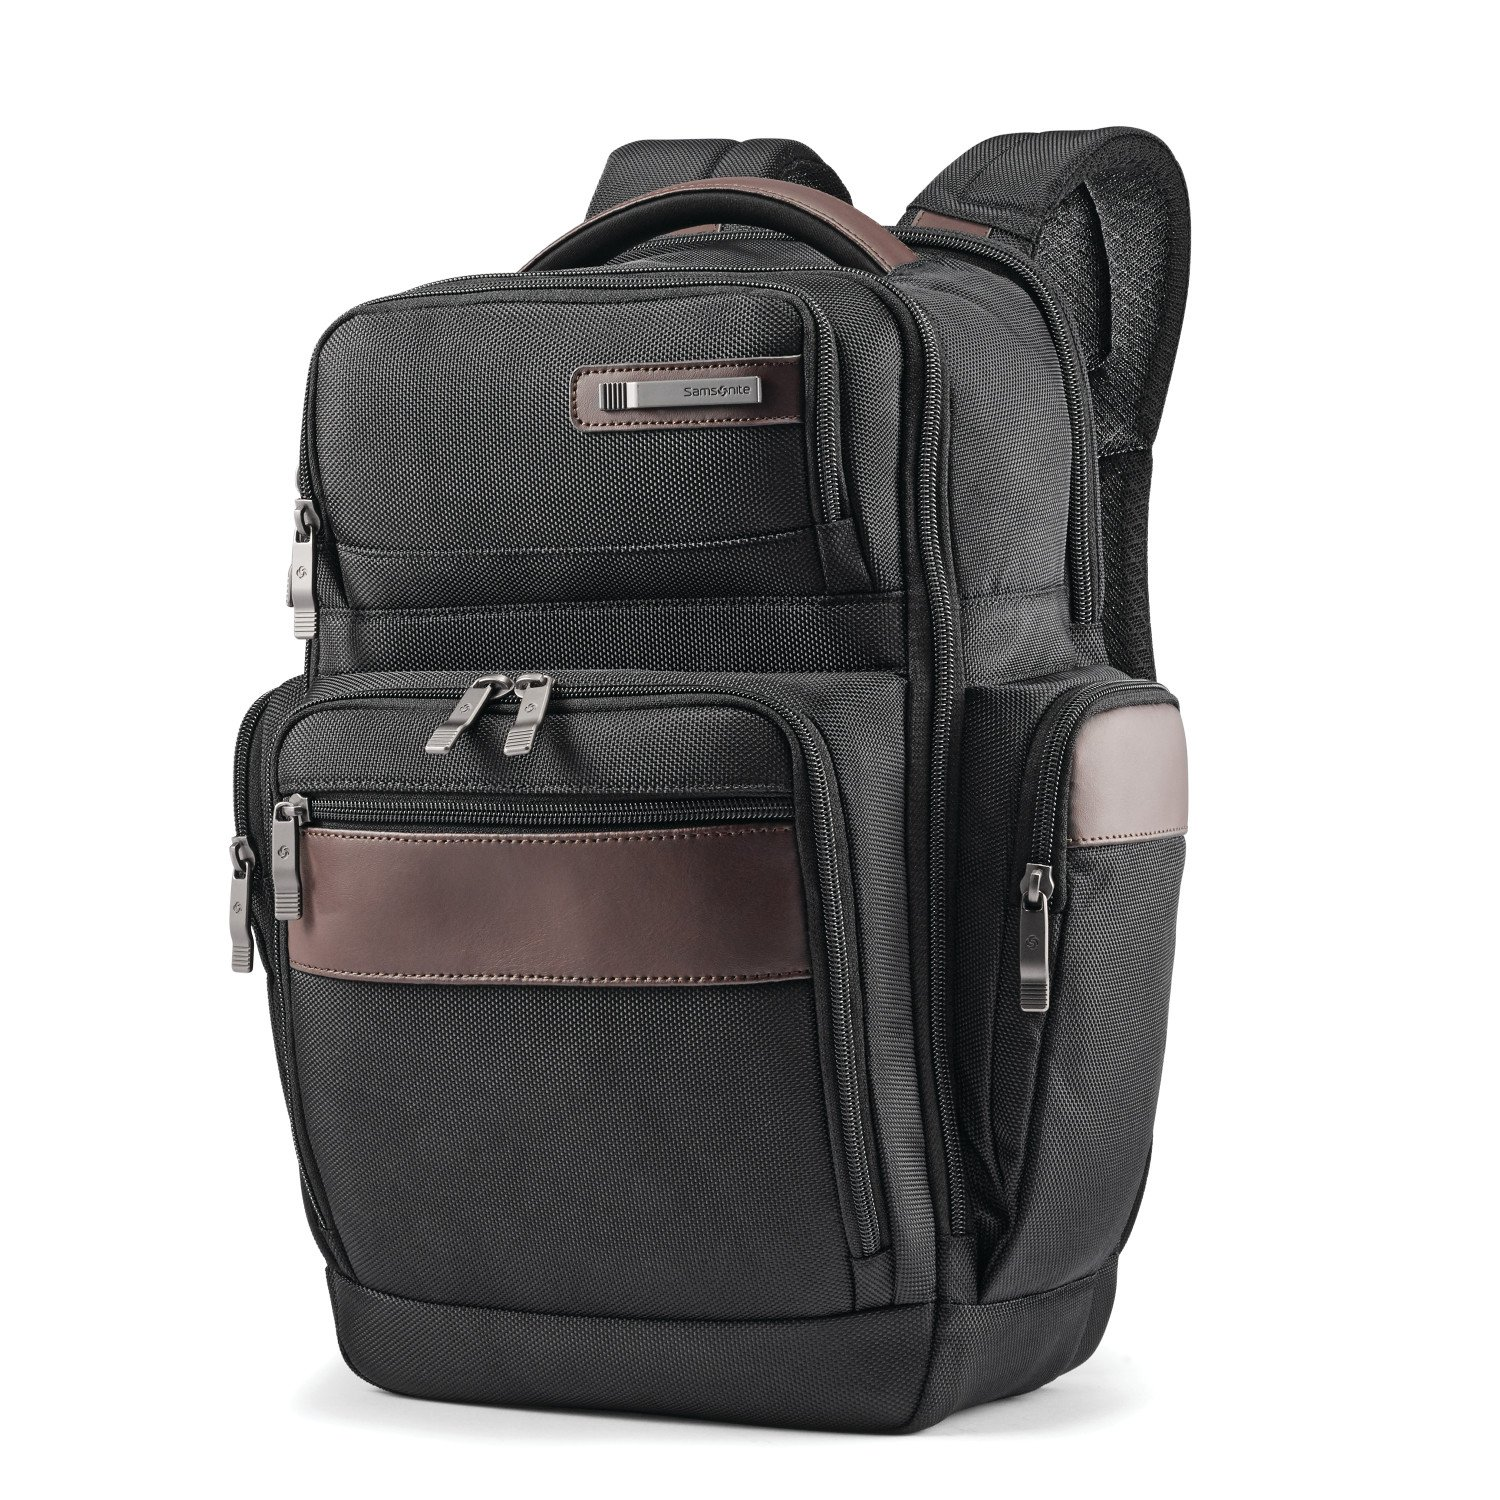 7a20071560 Backpack Trolley Samsonite | The Shred Centre